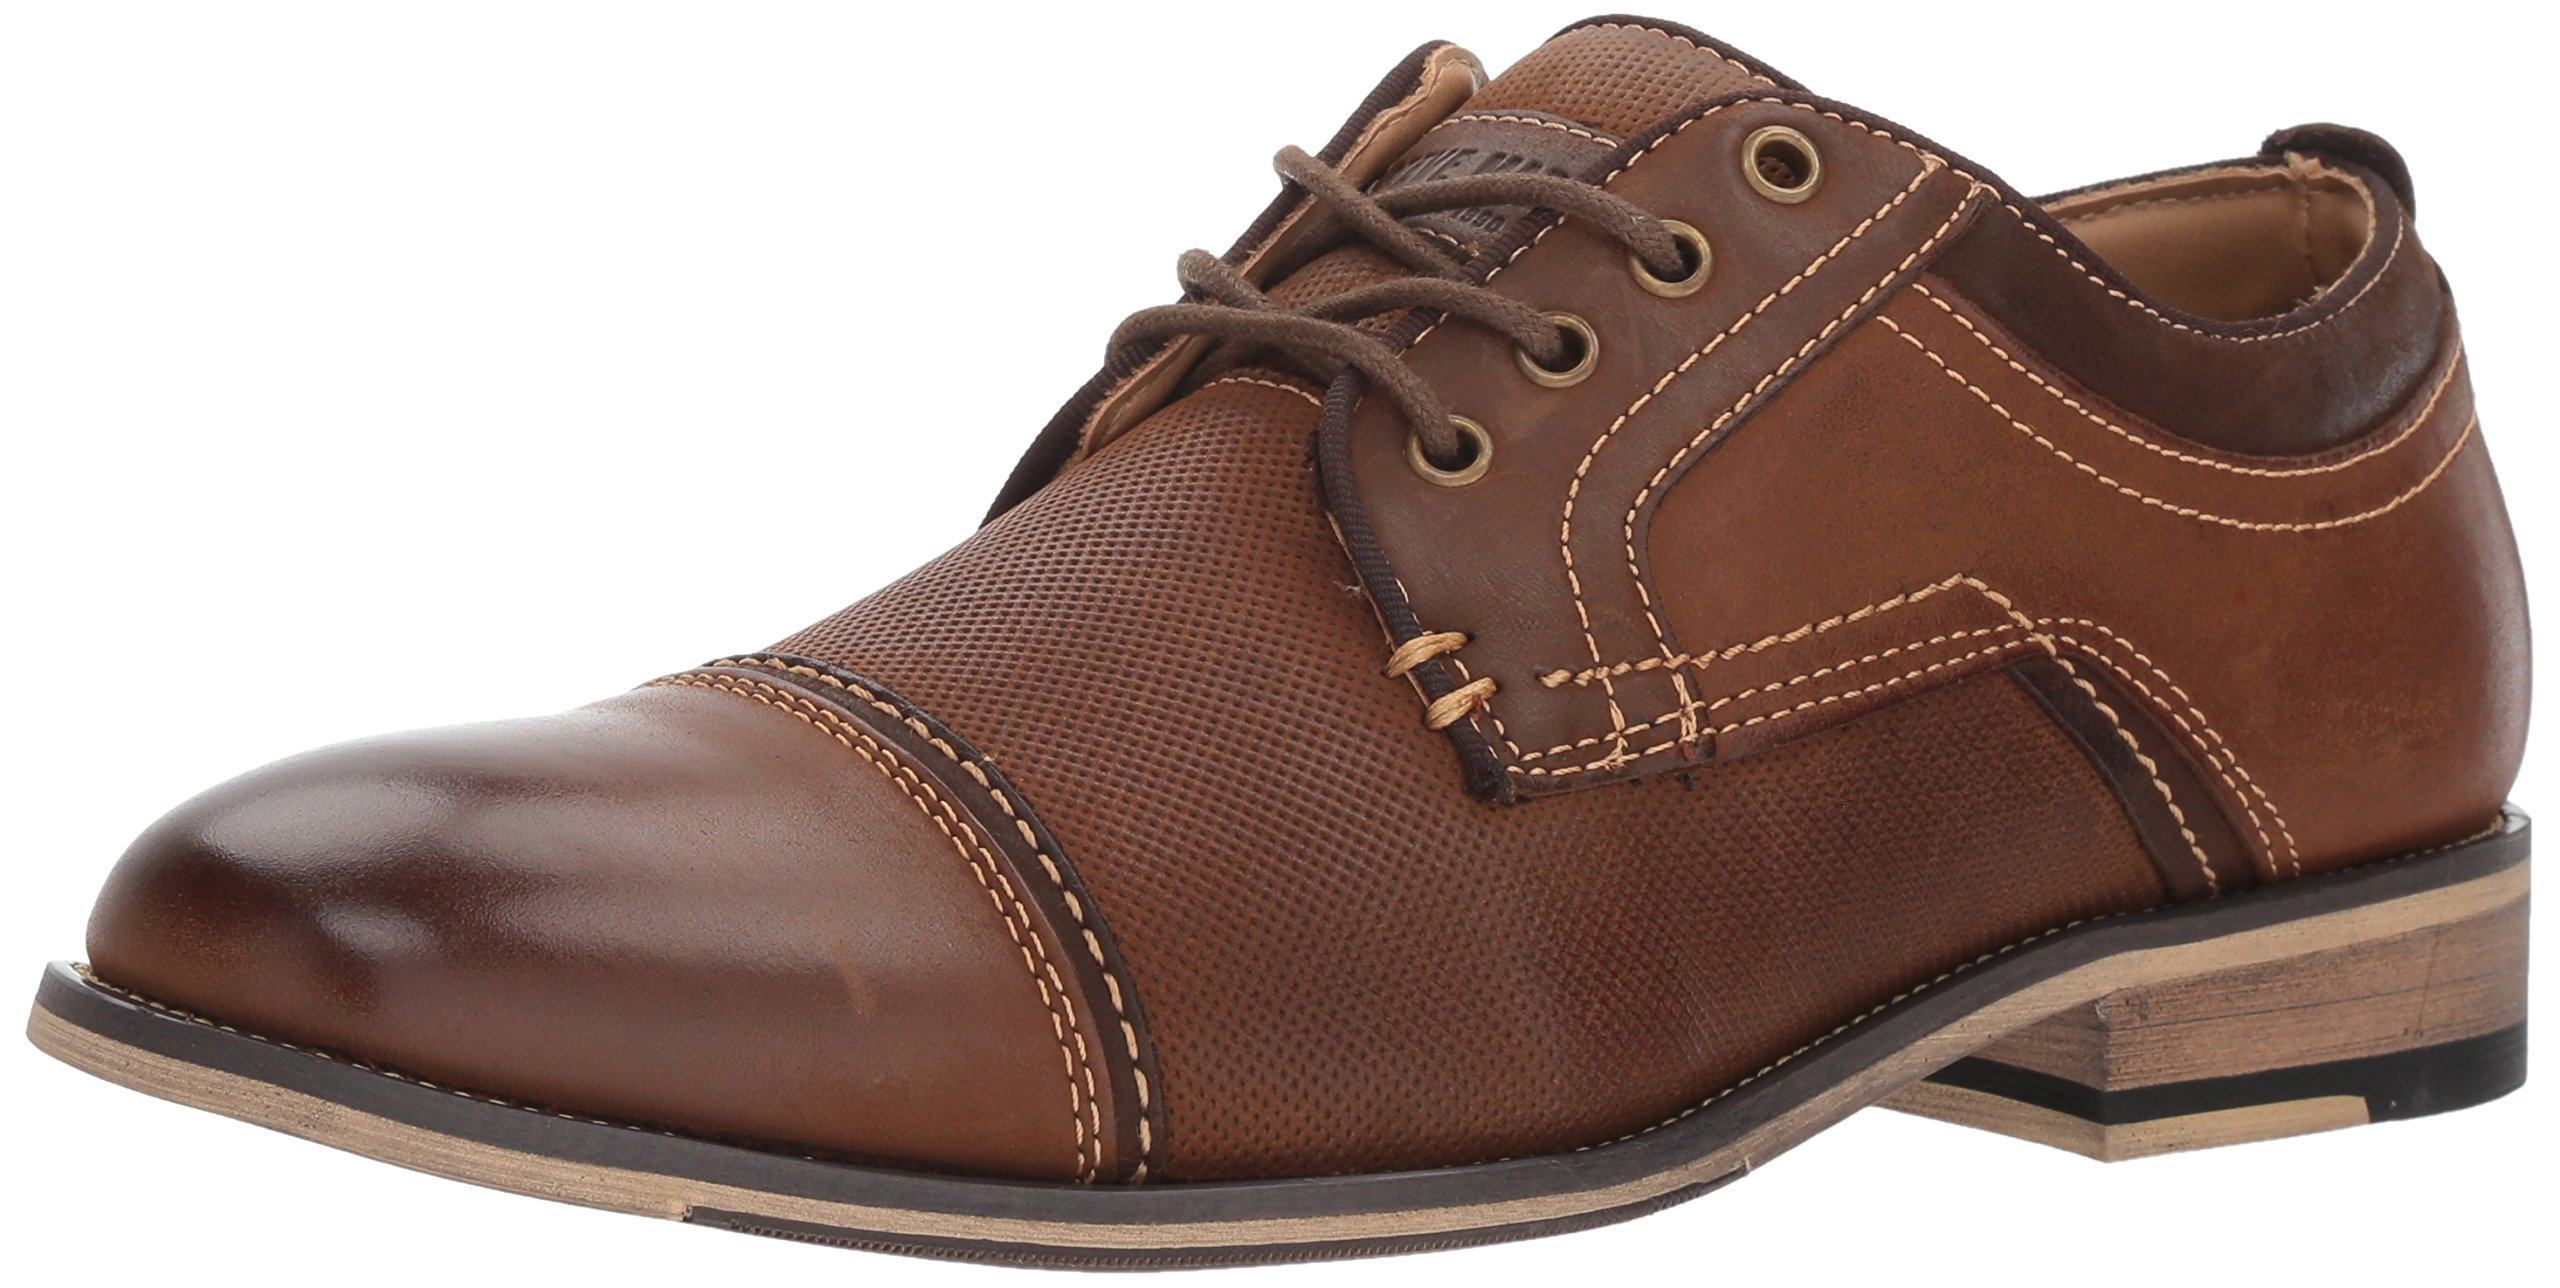 Steve Madden Men's Jakub Oxford, Dark Tan, 9 M US